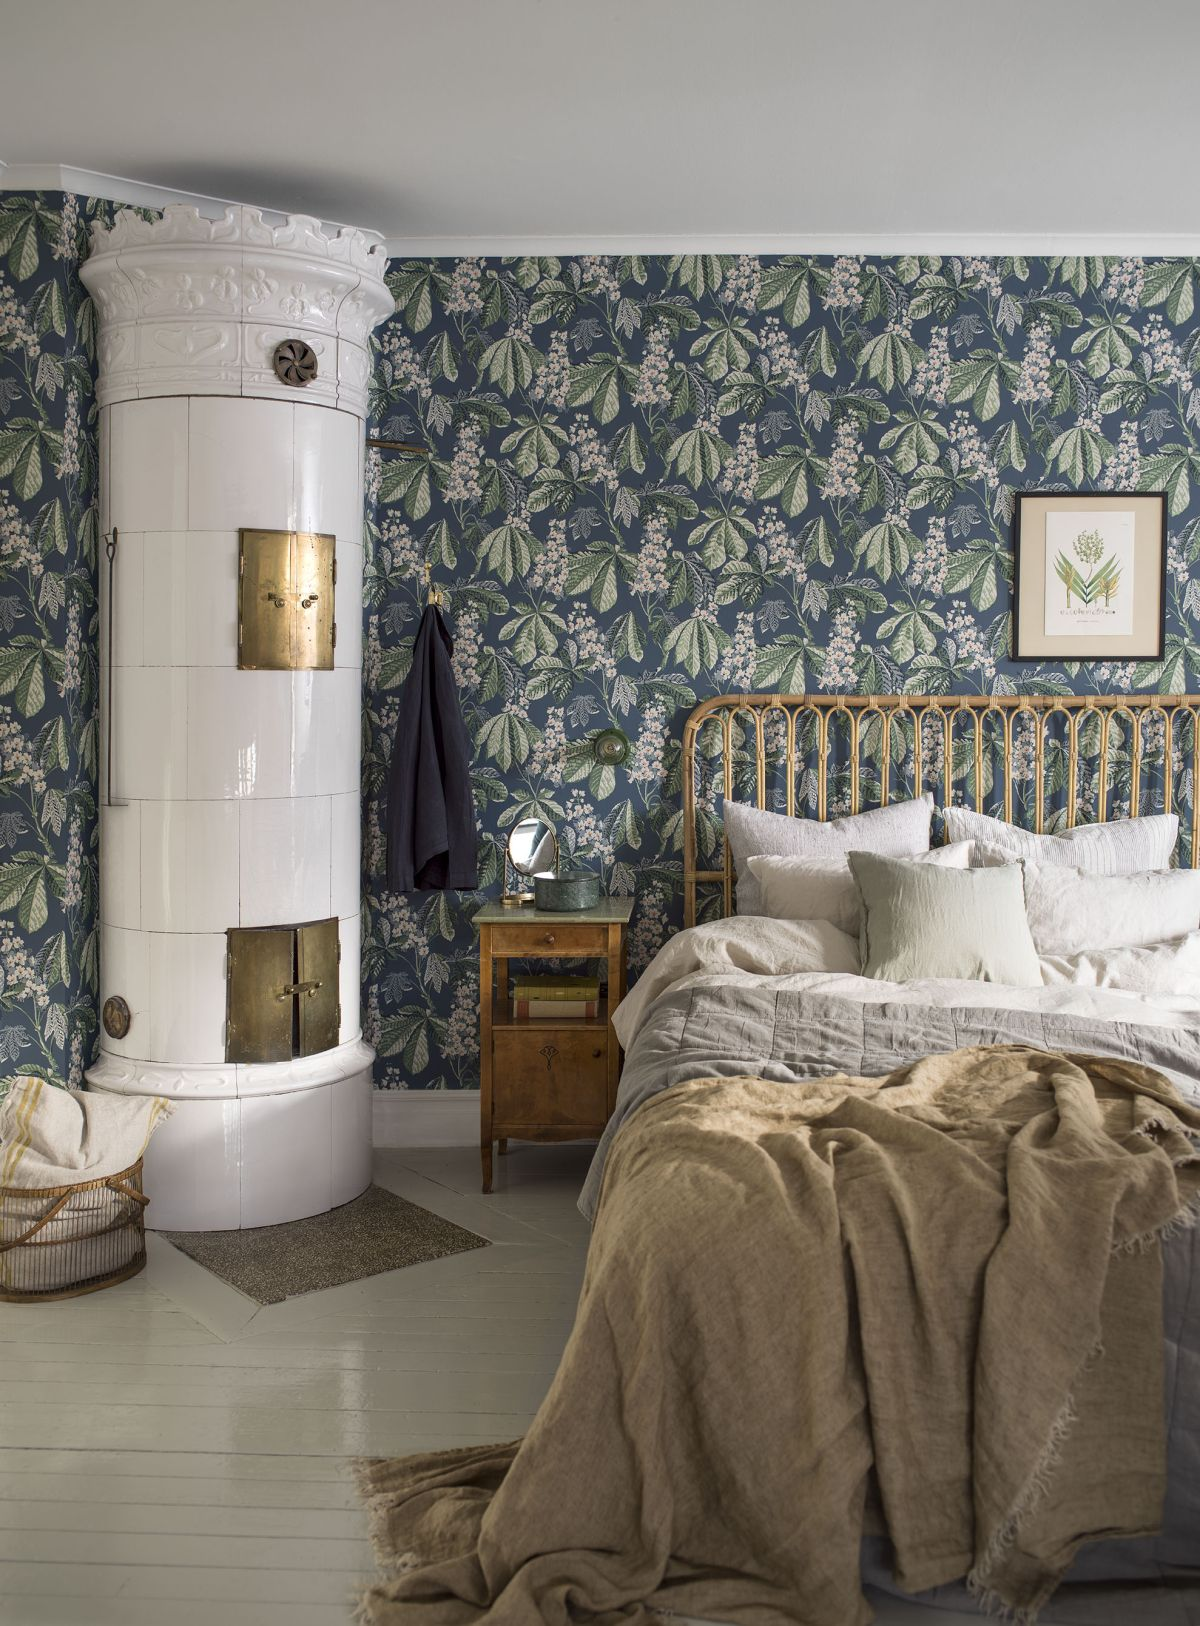 Bedroom wallpaper ideas: 11 ways to add personality to your space